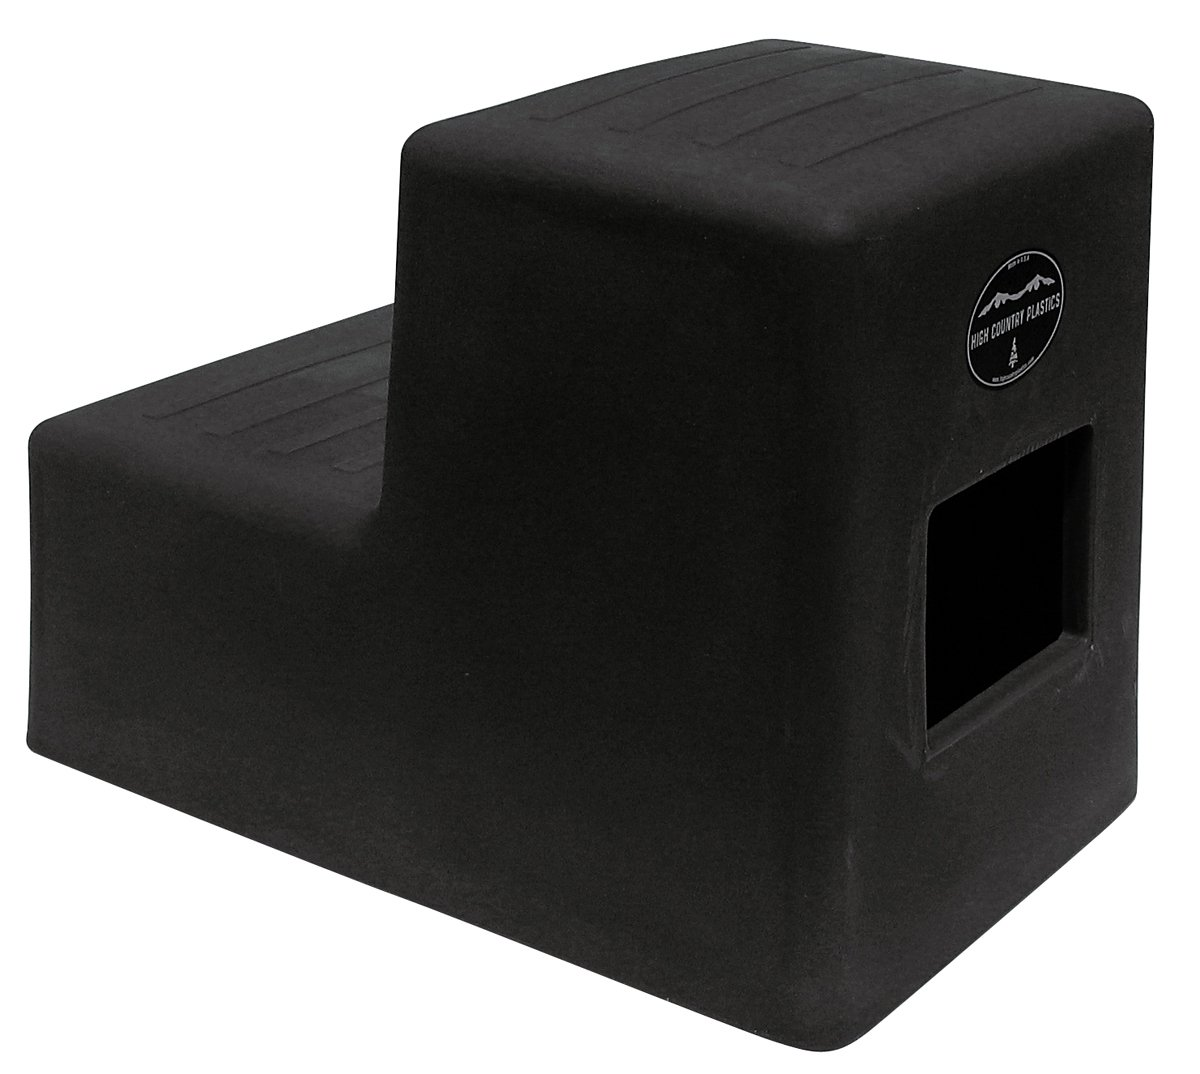 2 Step Horse Mounting Block Black High Country Plastics